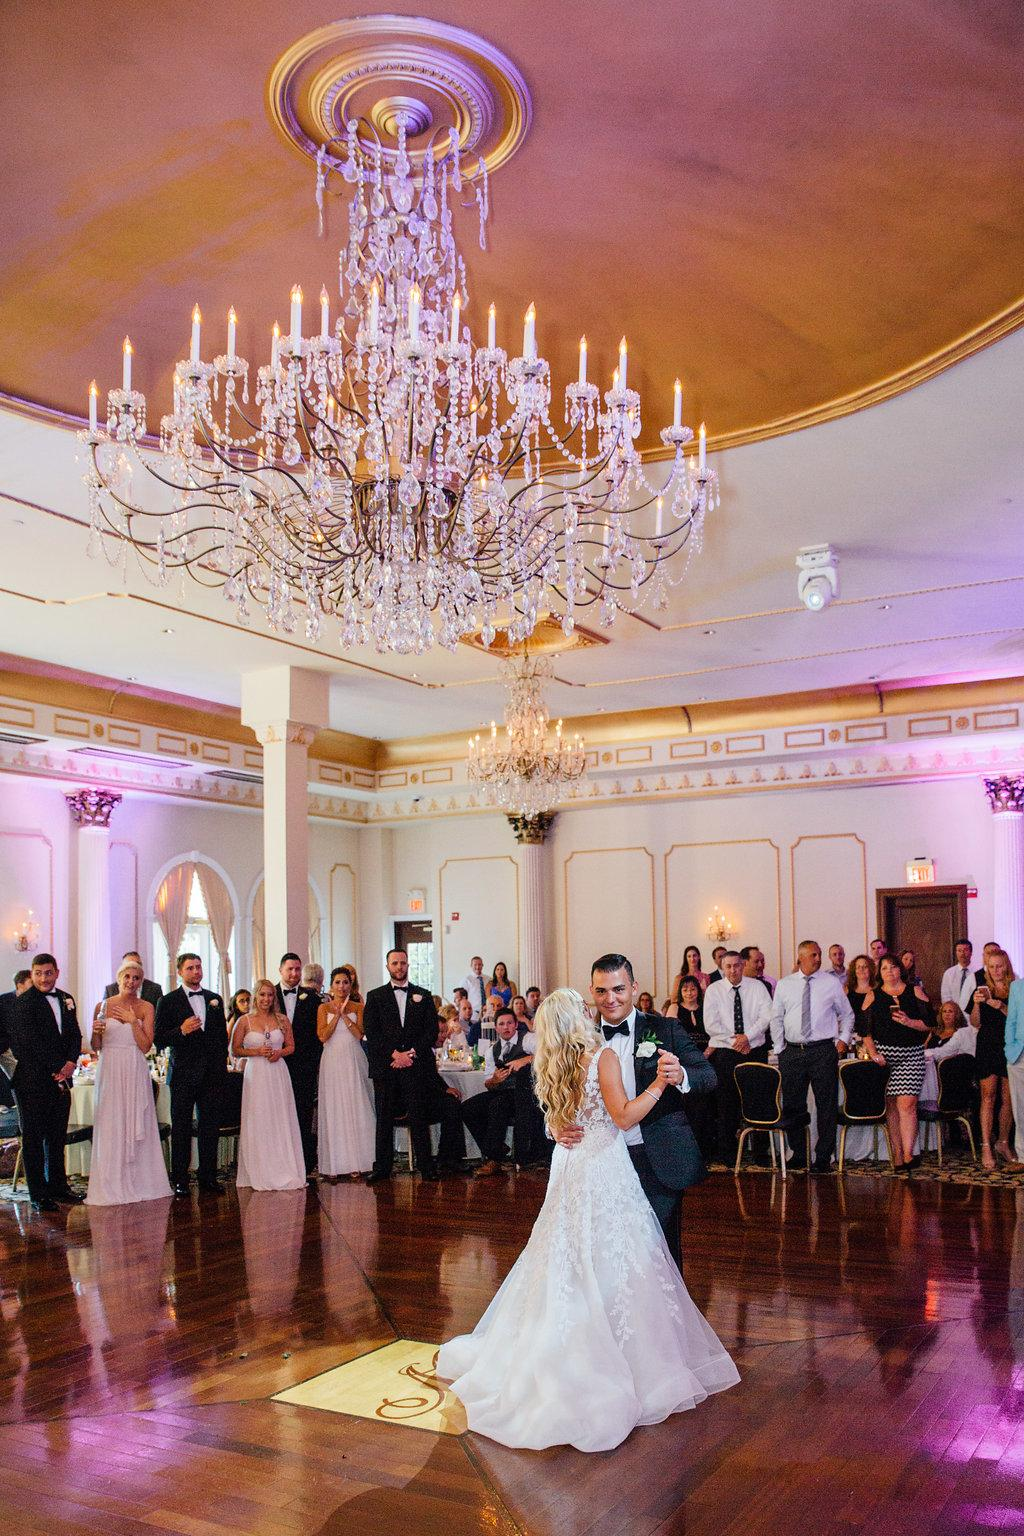 Classic Chic New Jersey Wedding At The Merion Alison Leigh Photography Philly In Love Philadelphia Delaware New JerseyWedding Blog Venues Vendors